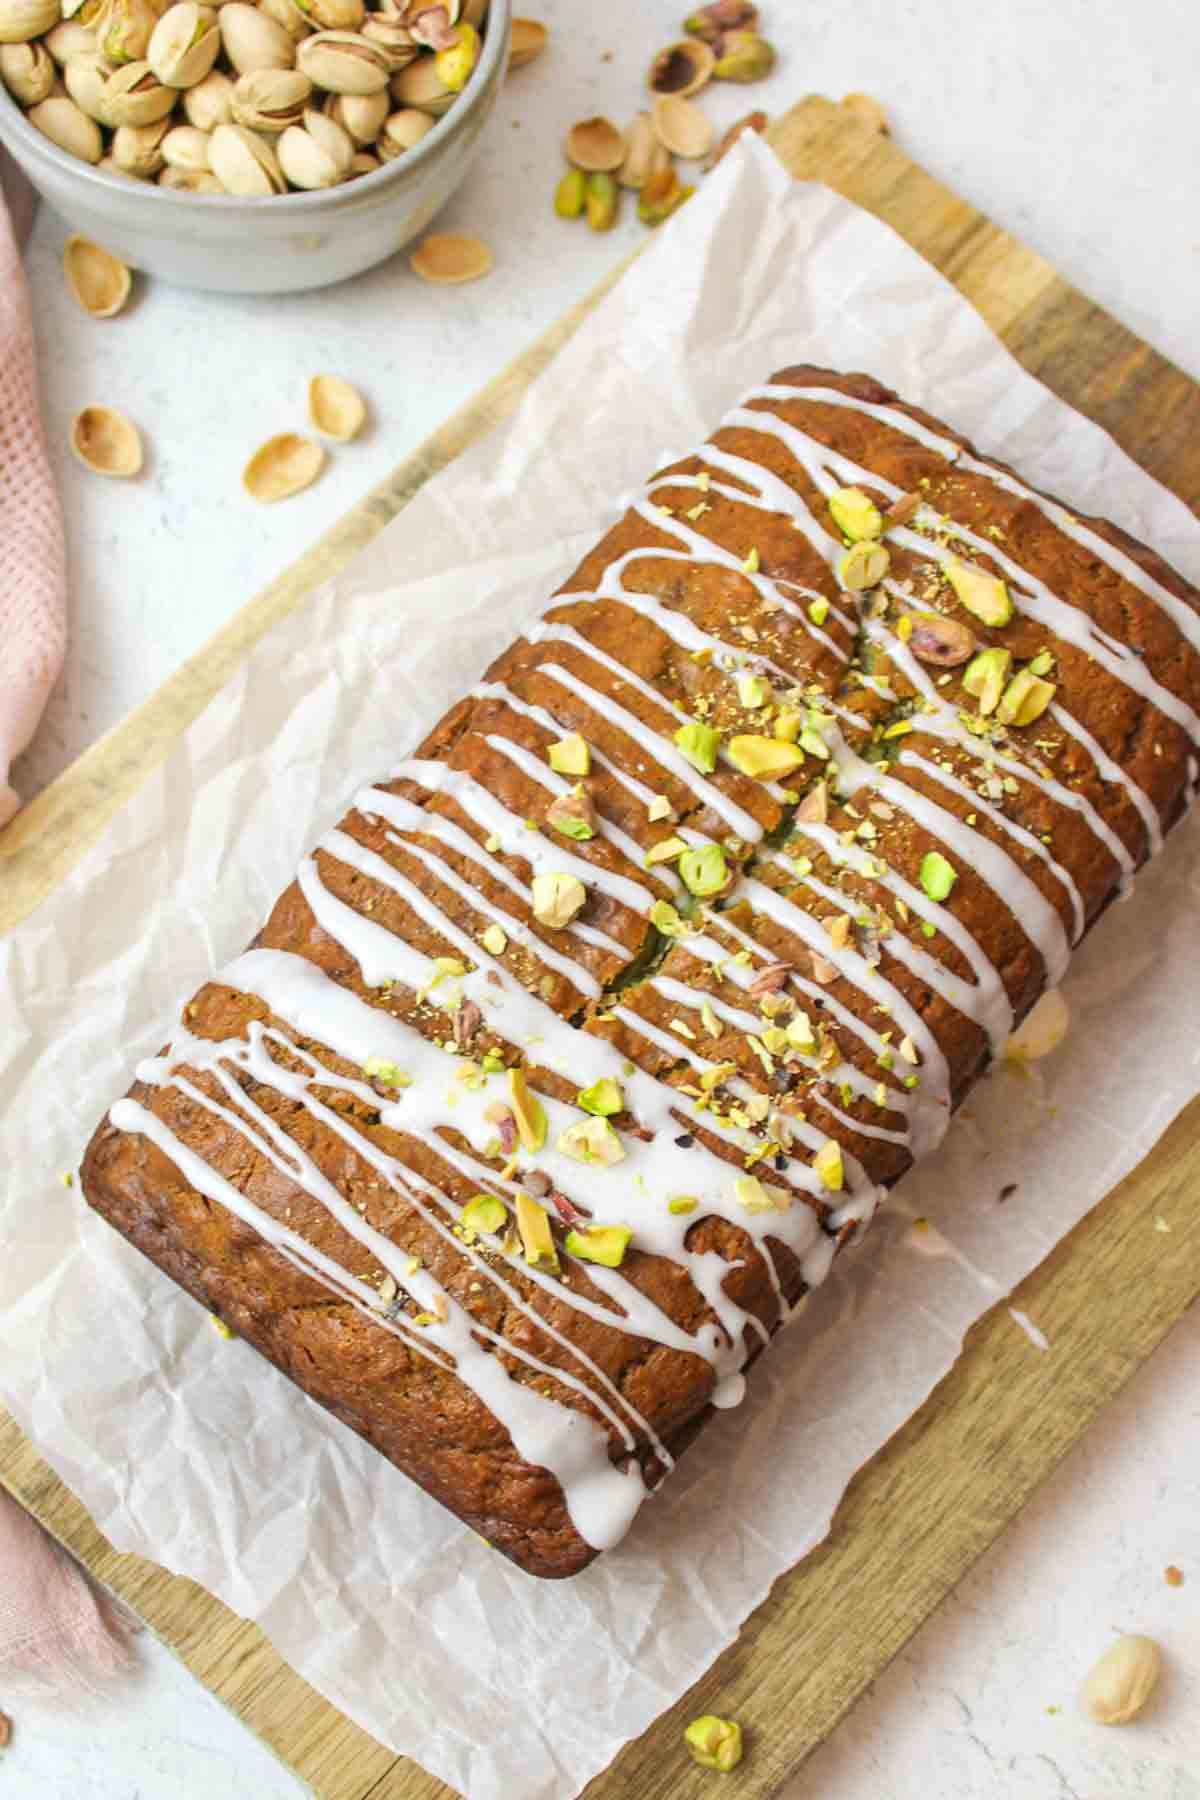 a thickly sliced loaf of pistachio banana bread next to a box of pistachio pudding